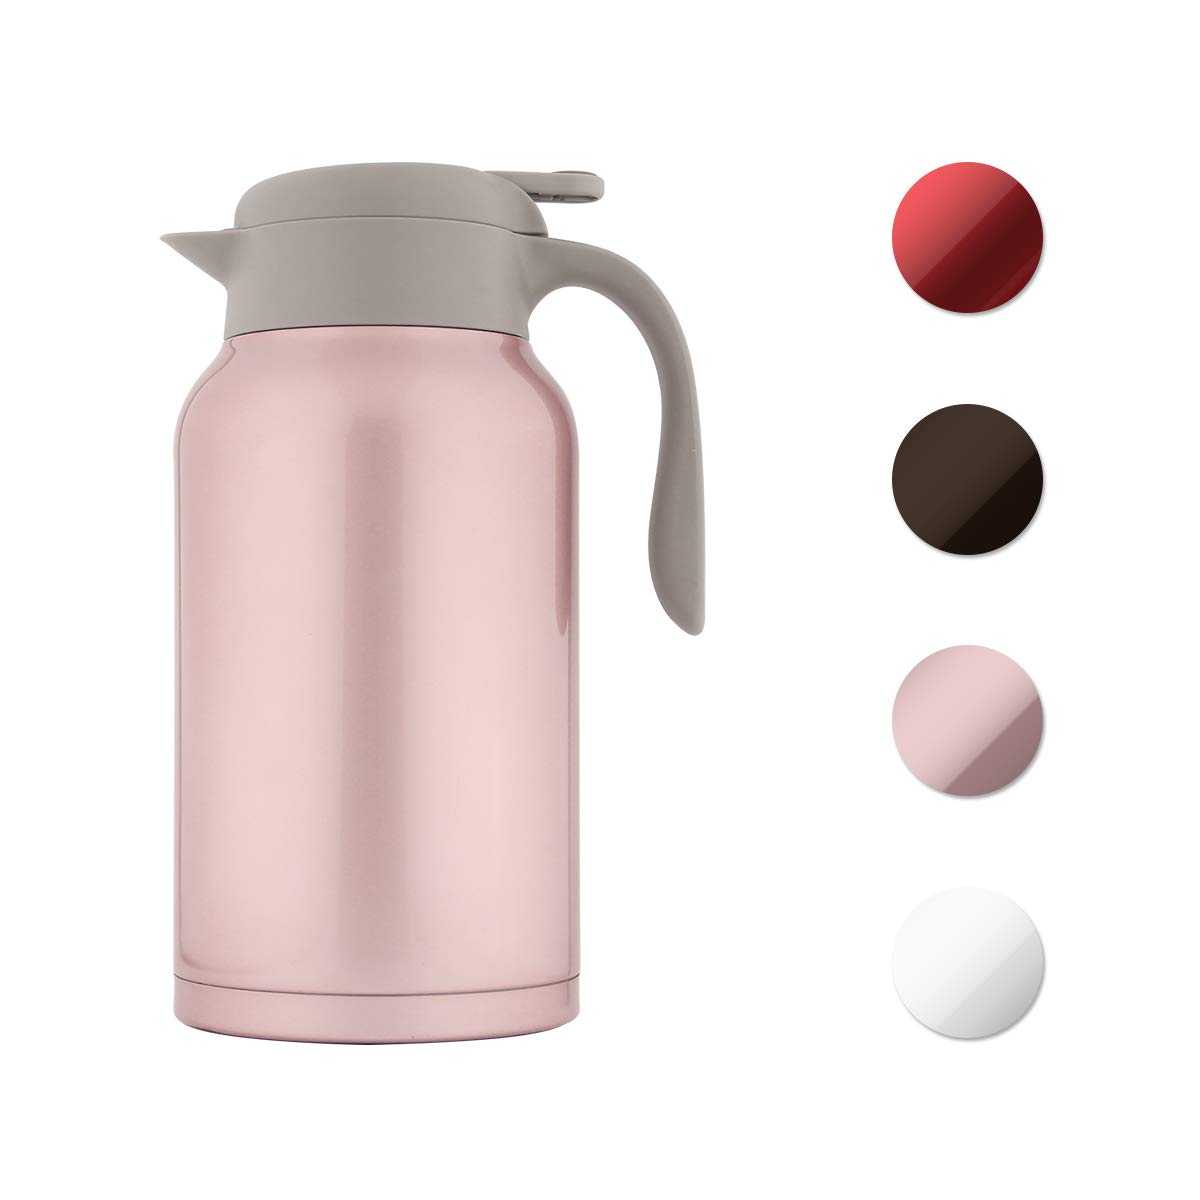 SDREAM 68 Oz Coffee Carafe Thermal Stainless Steel Double Walled Thermal Pots Hot Cold Beverage (Pink) by SDREAM (Image #1)